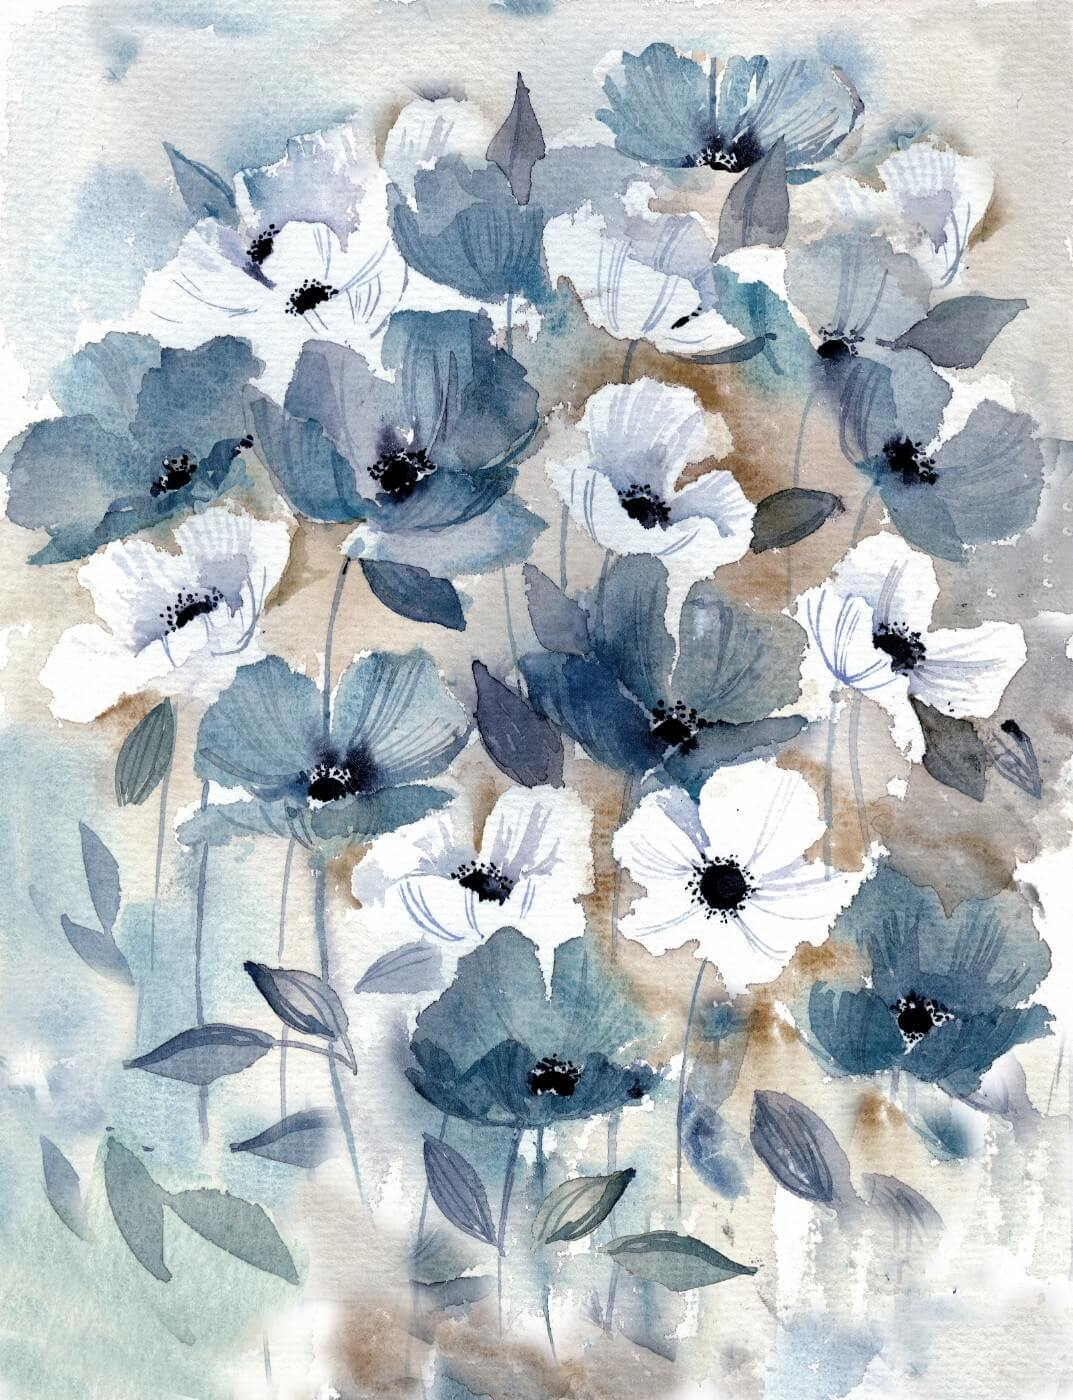 Tallenge Floral Art Collection - Contemporary Water Color - Daisy Field -  Canvas Prints